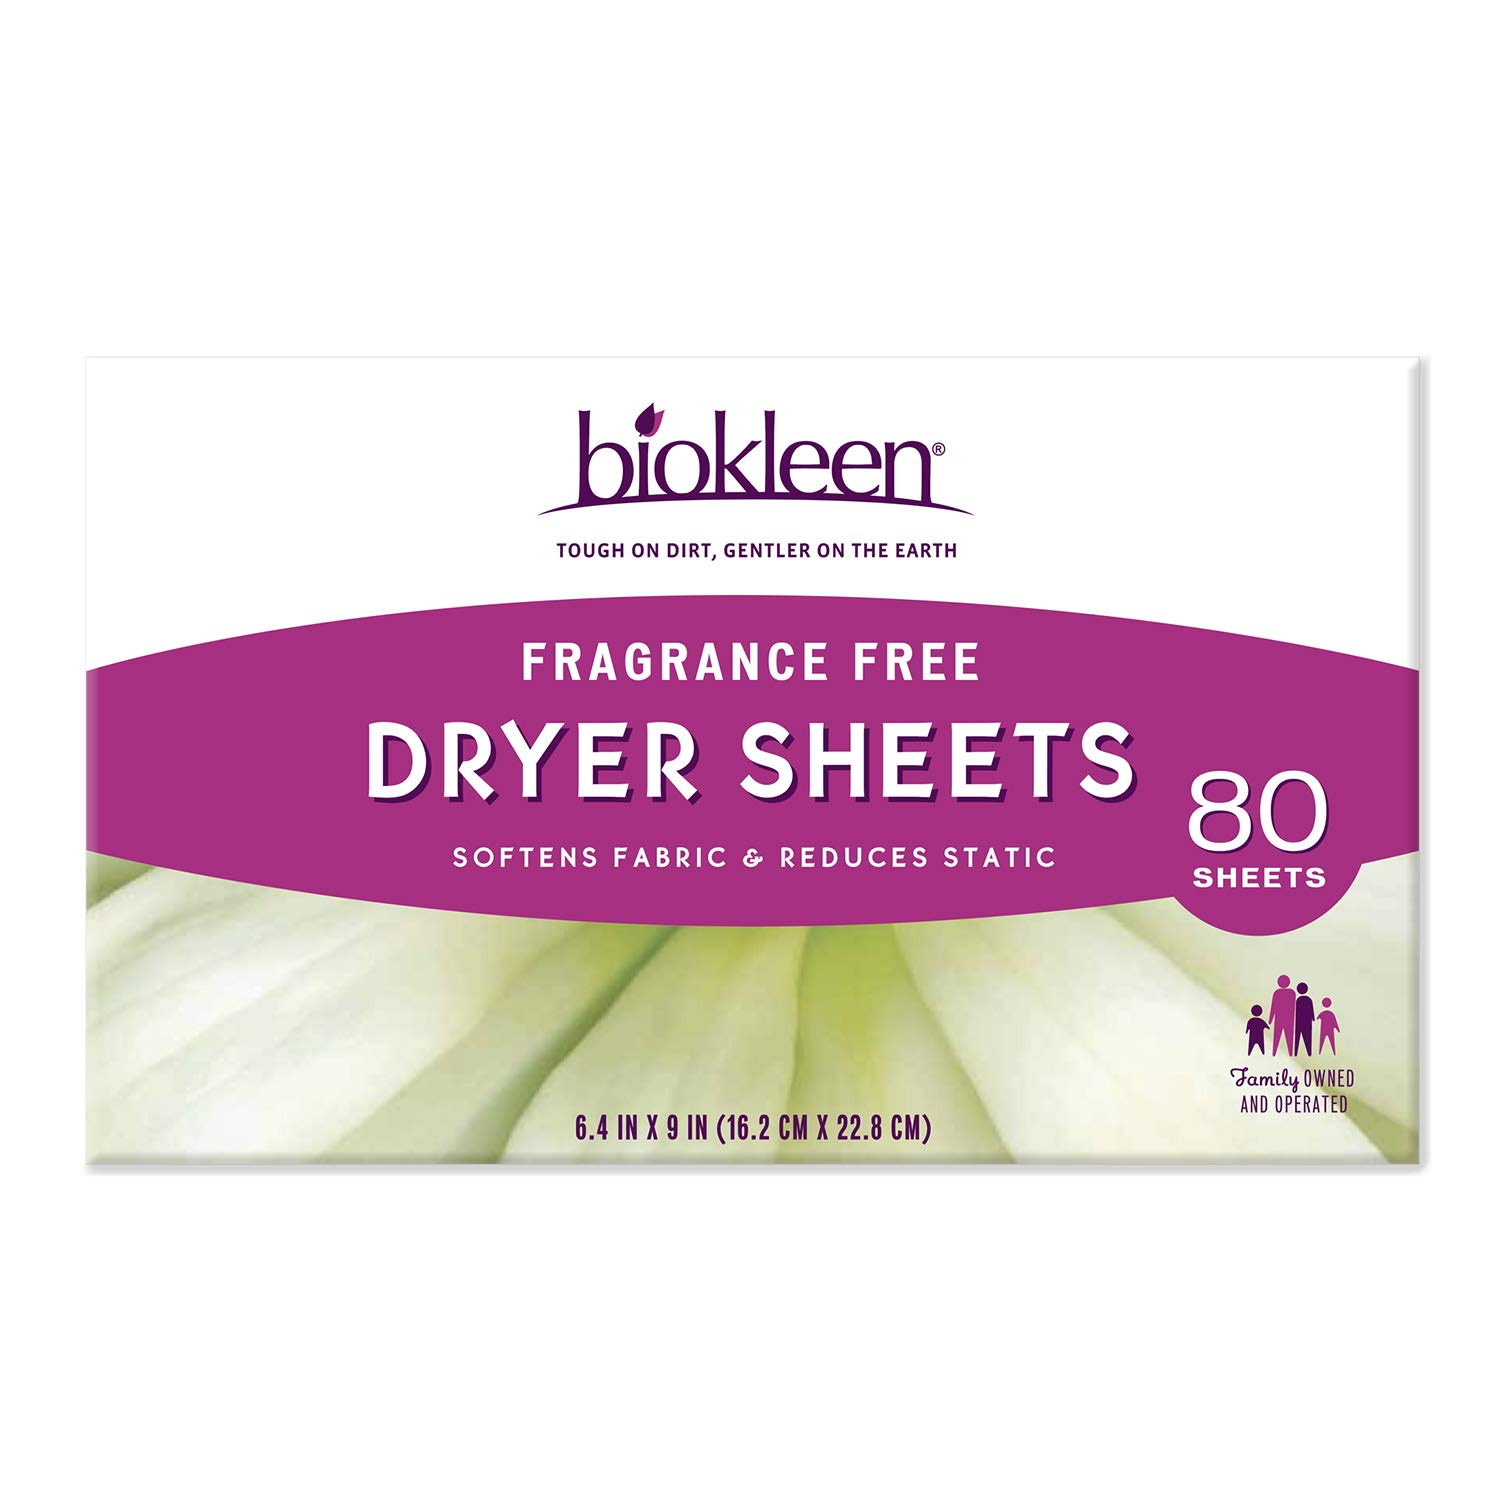 Biokleen Laundry Dryer Sheets, Fabric Softener, Eco-Friendly, Non-Toxic, Plant-Based, No Artificial Fragrance, Colors or Preservatives, Fragrance Free, 80 Sheets